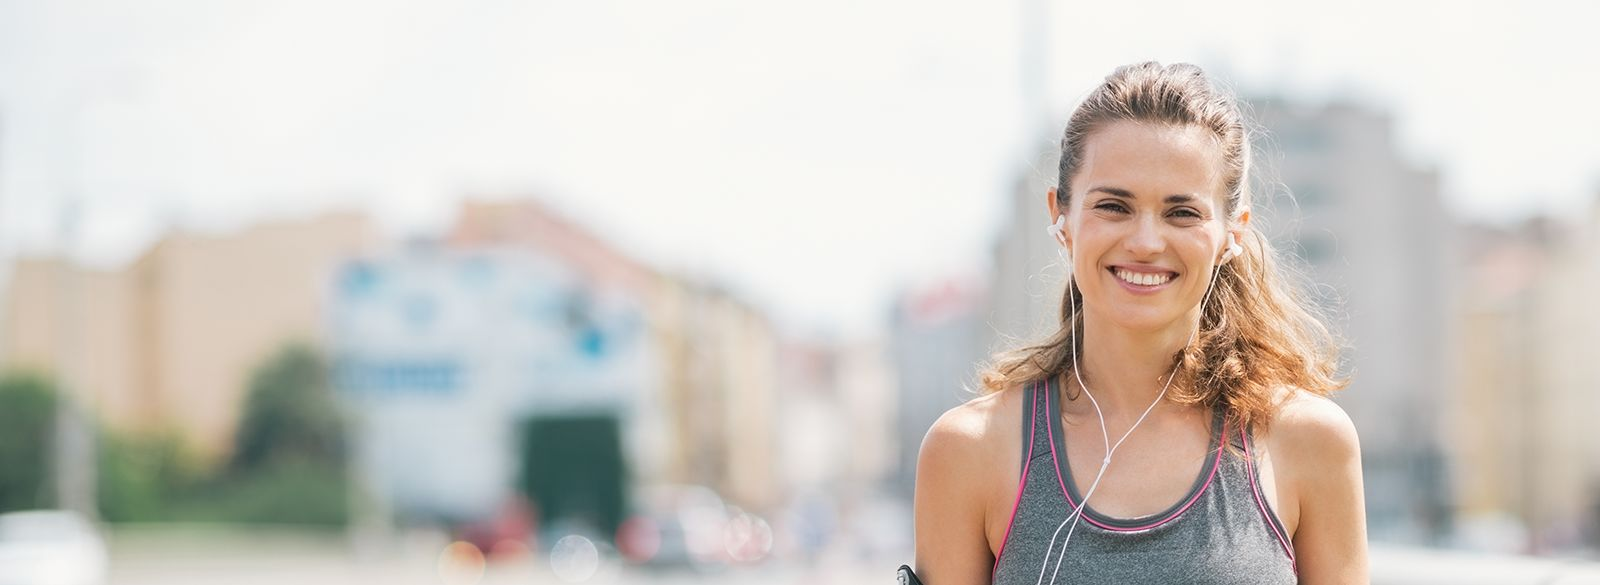 woman with a beautiful smile jogging in the city